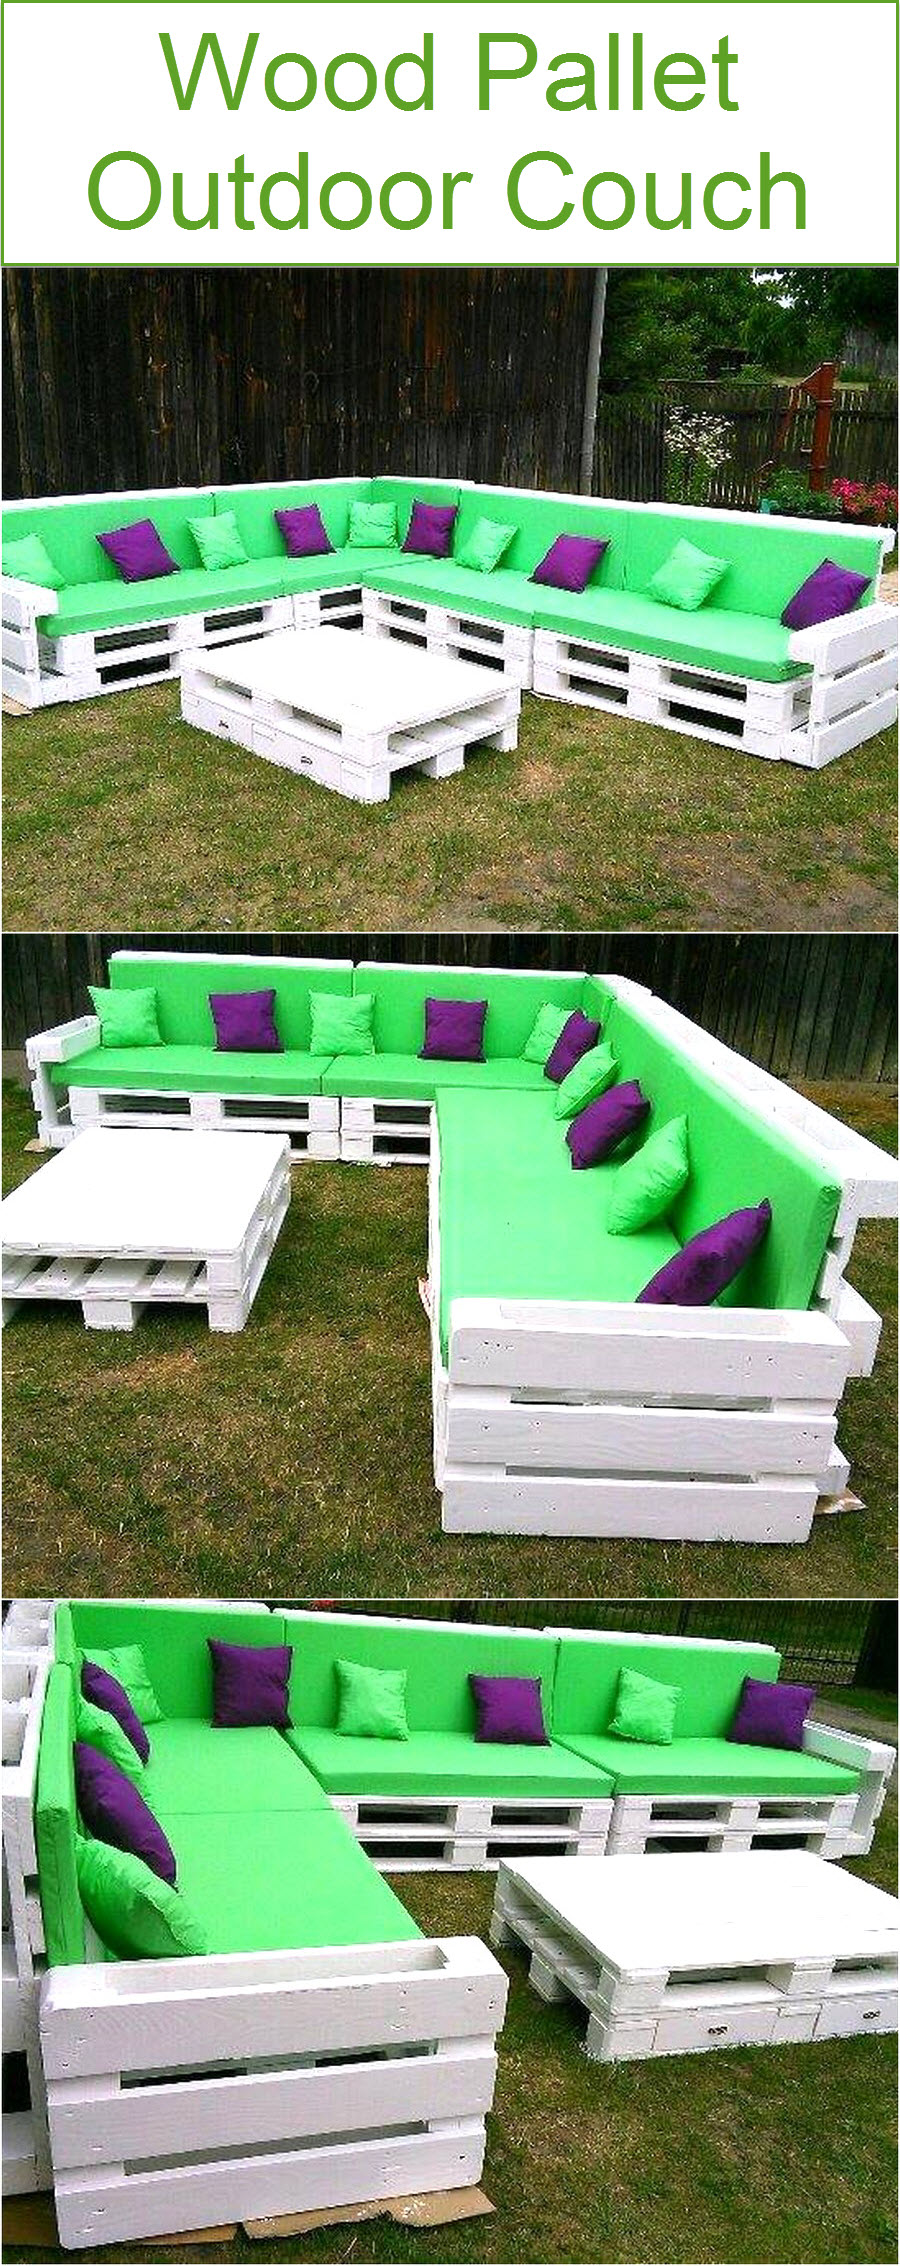 wood-pallet-outdoor-couch